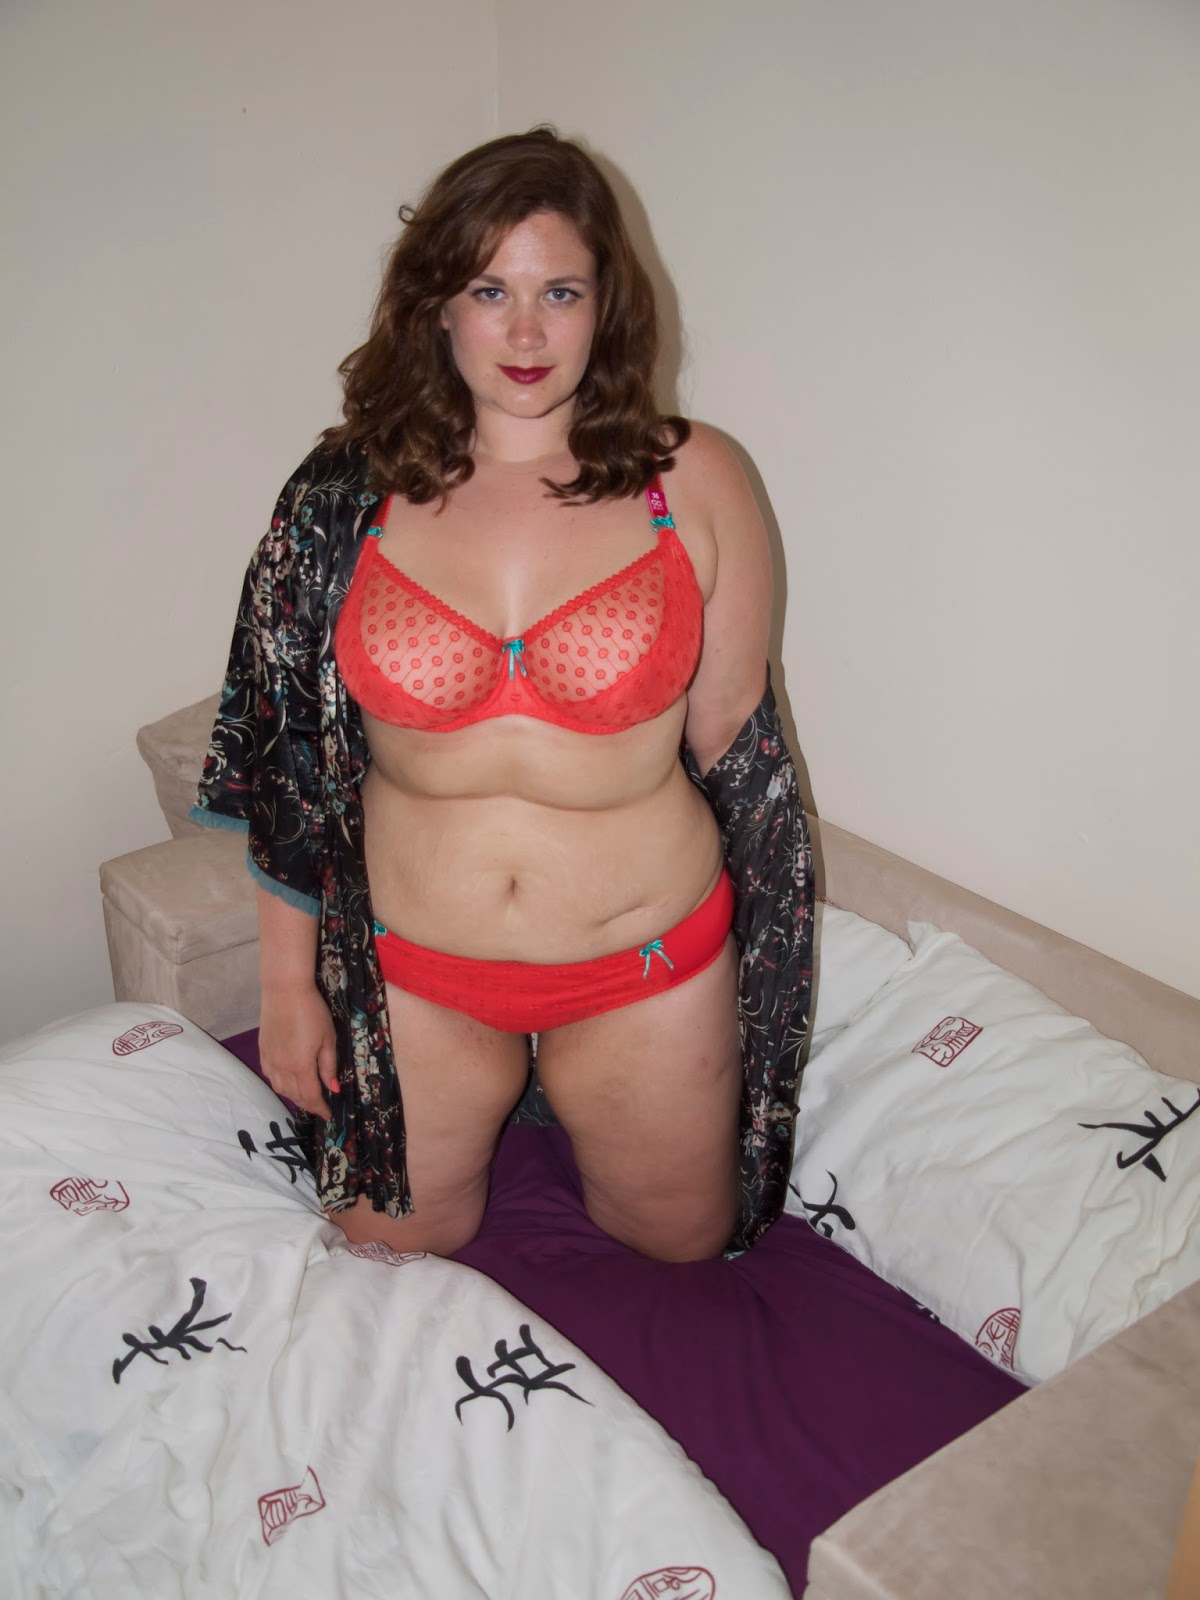 Curvy girl in a calendar audition 2